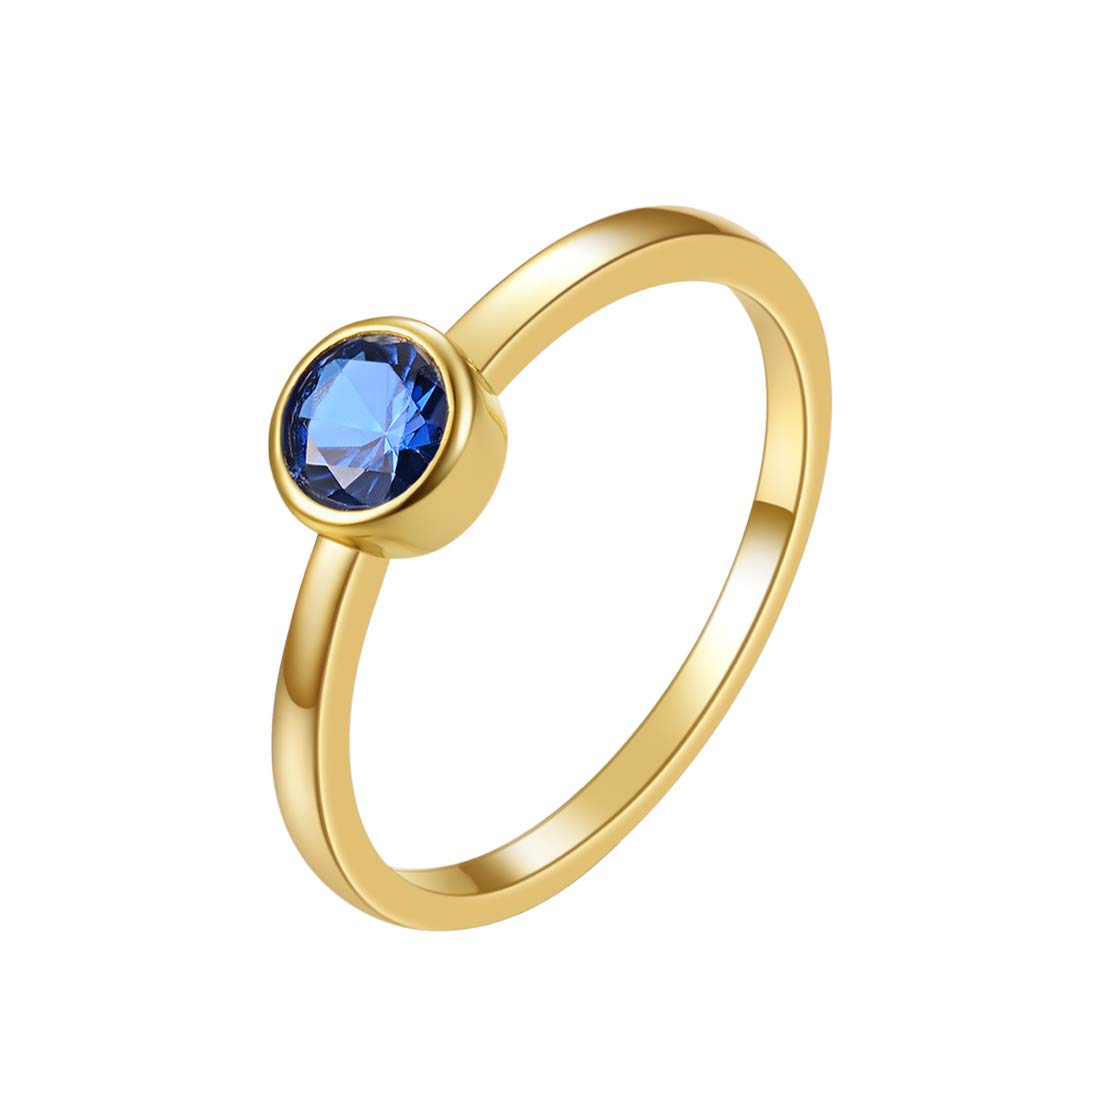 E 18K Gold Plated Stackable Bands Ring for Women, Eternity Ring with Shell Pearl, Cubic Zirconia, Colorful Birthstone